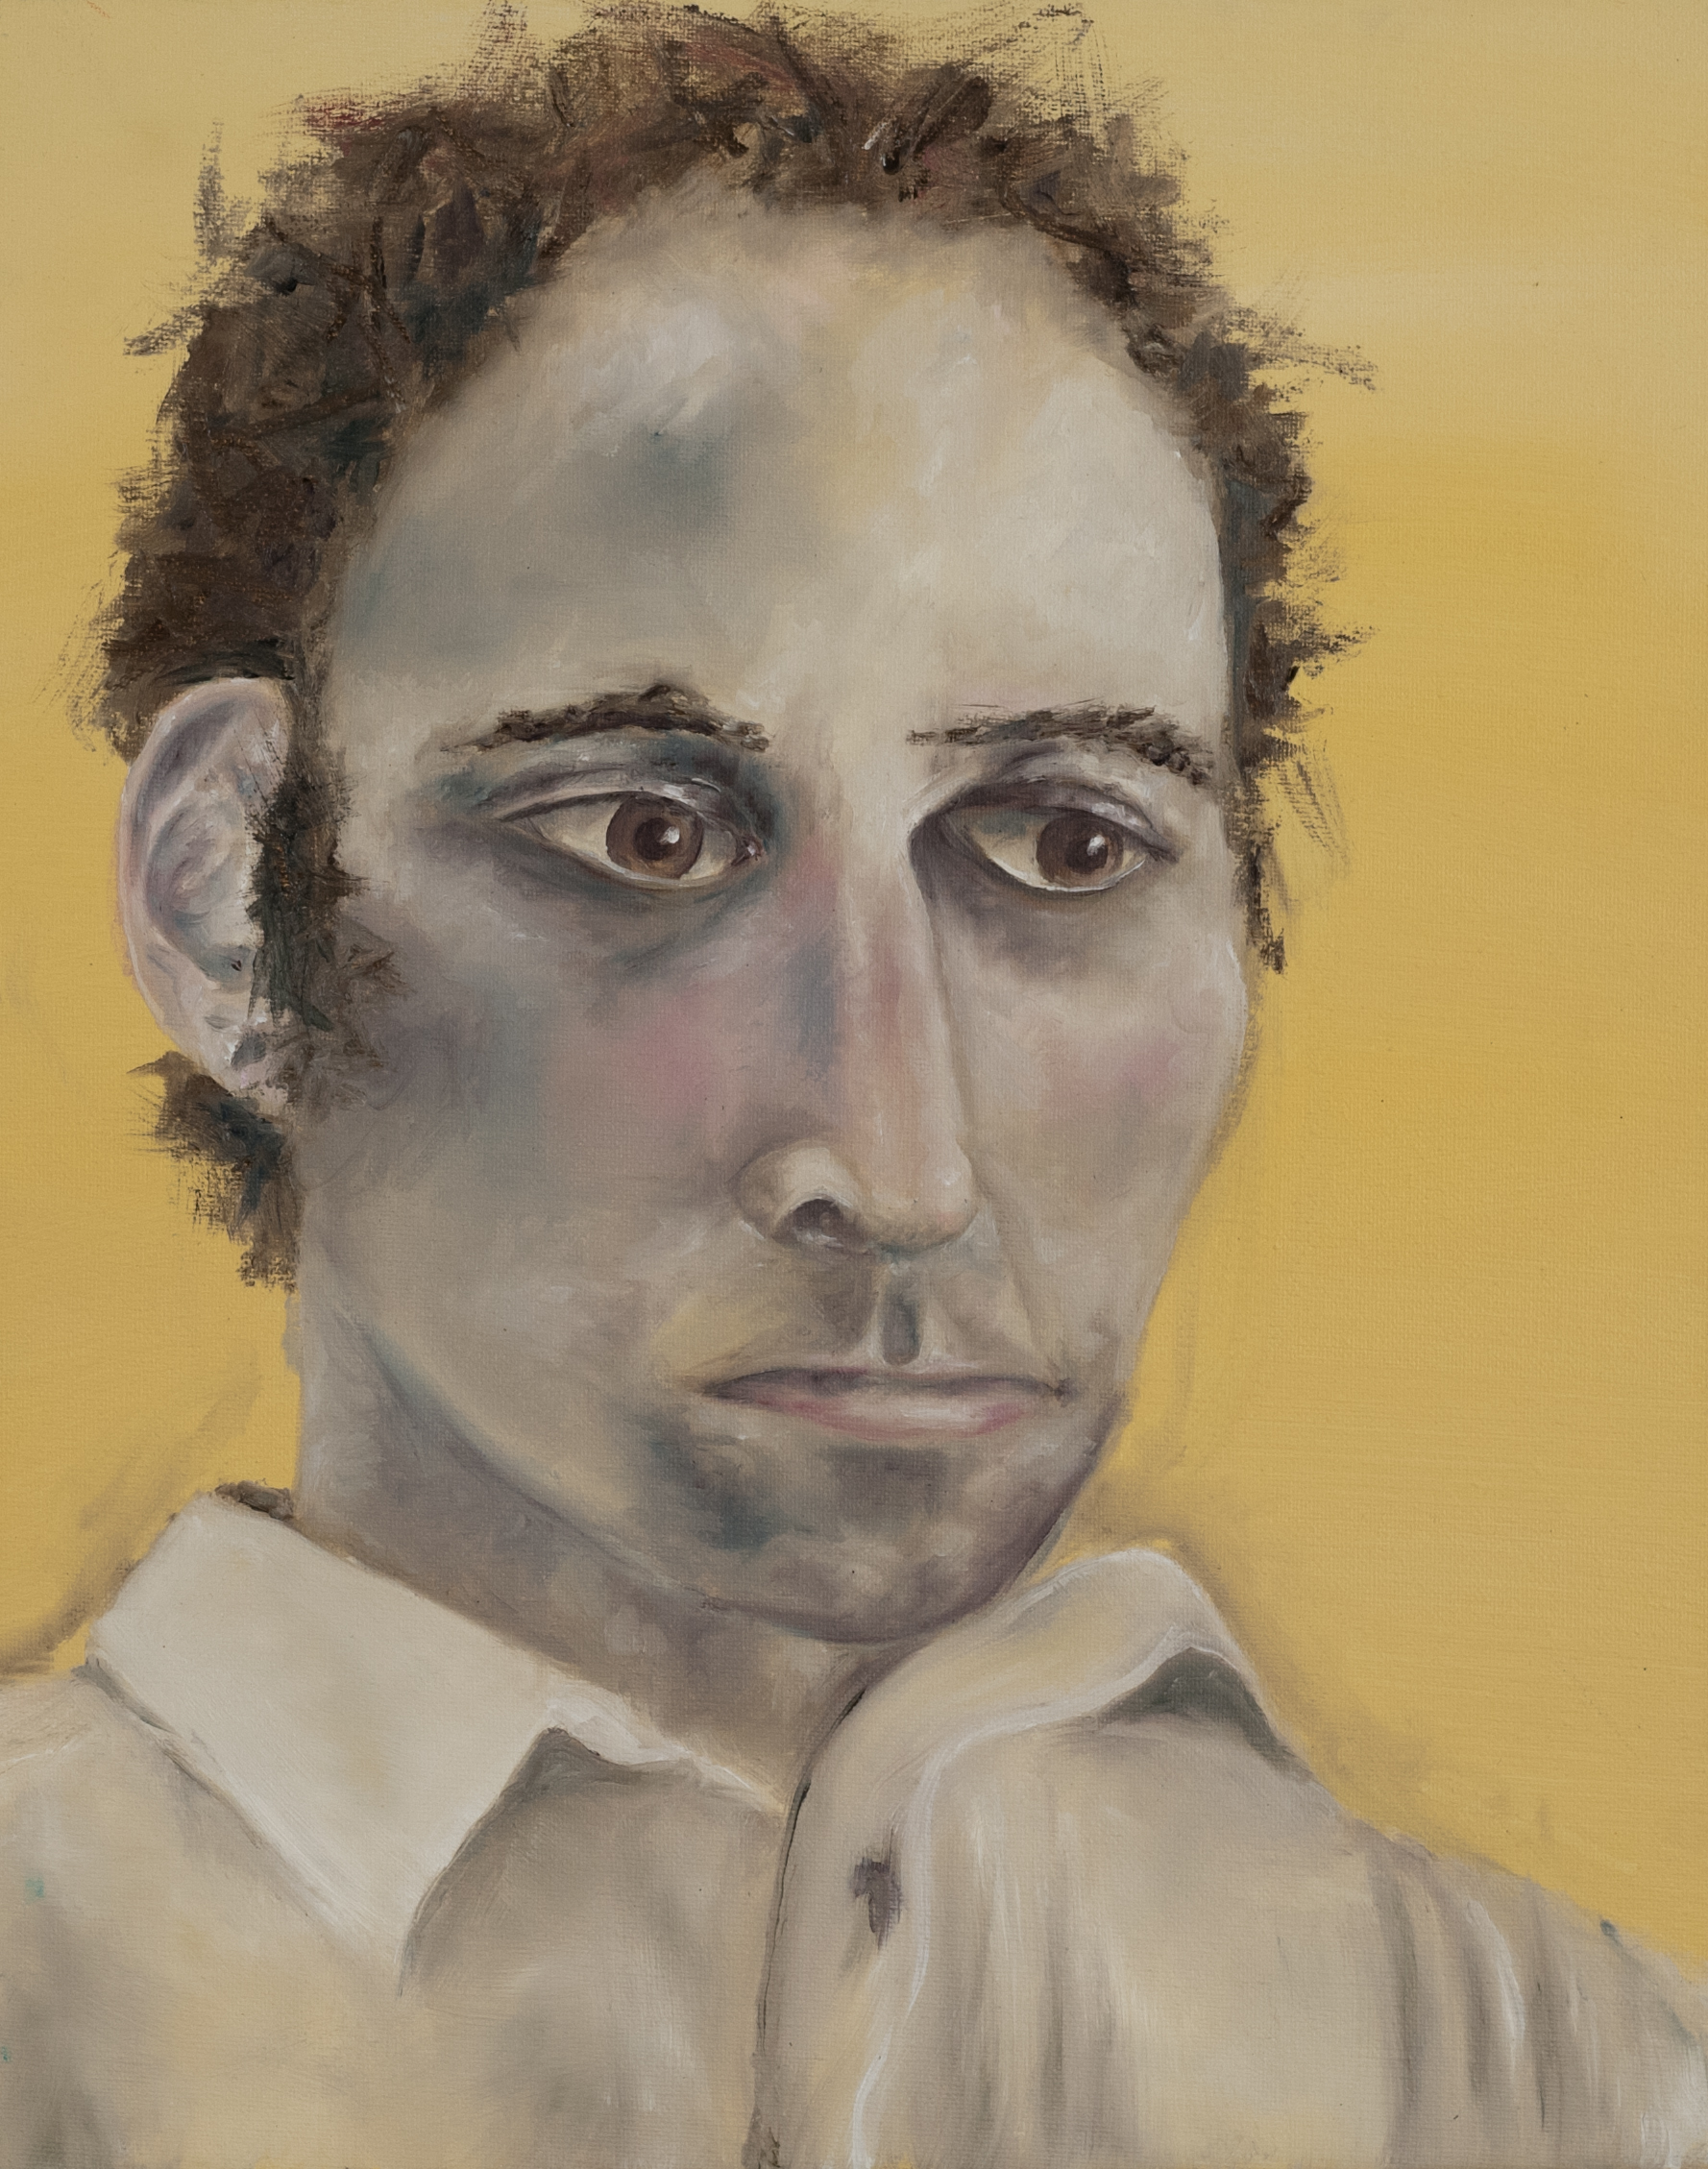 """Oil on canvas. 16"""" x 20"""" 2010   Contact the artist to purchase a print of this image or to commission a portrait."""